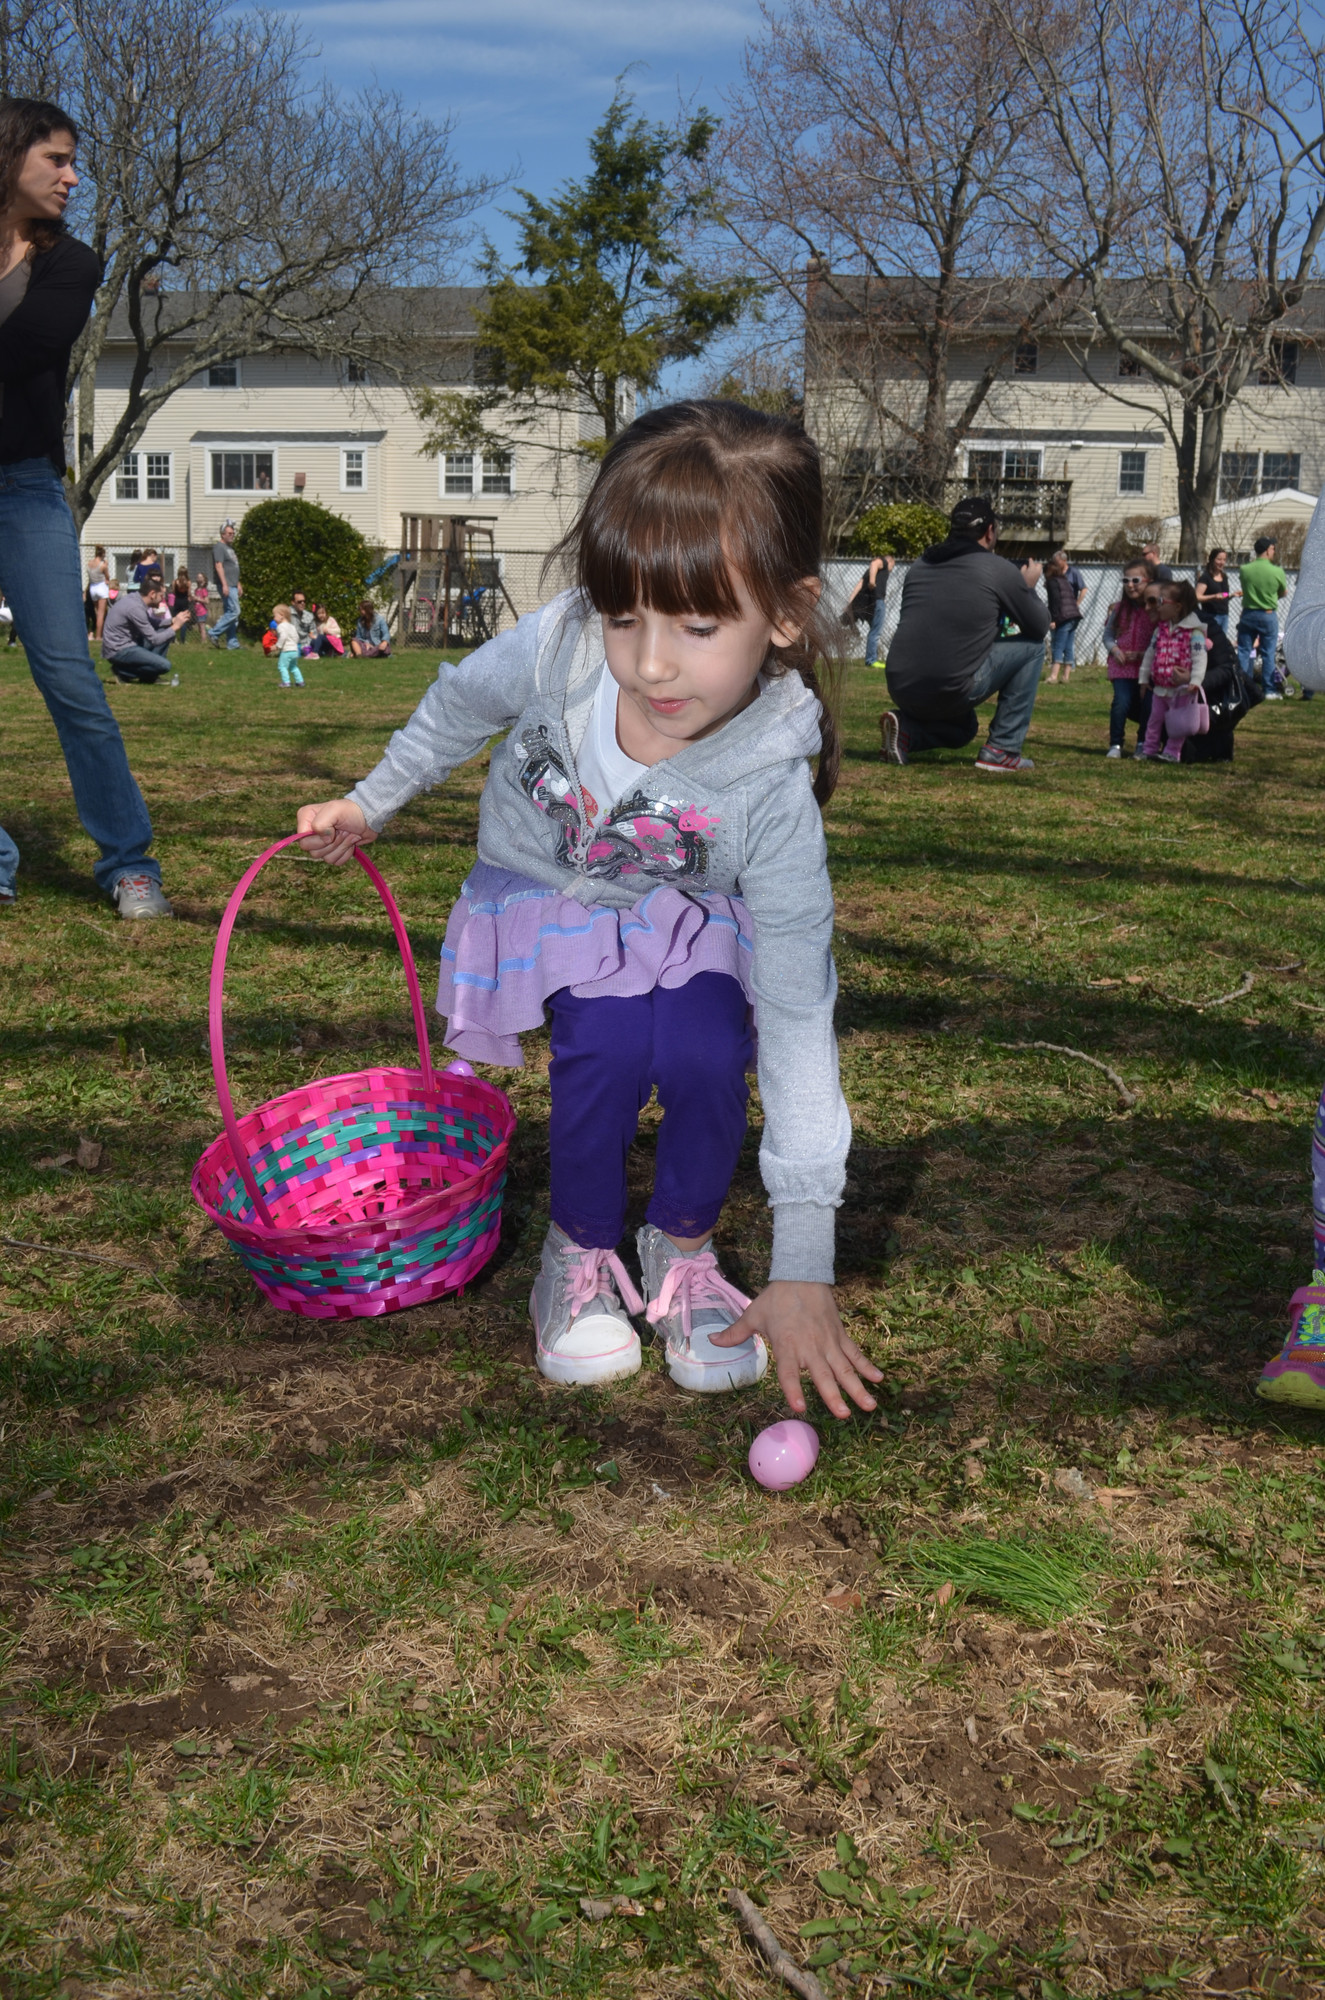 Ella Londino, 6, collected an egg during the egg hunt.